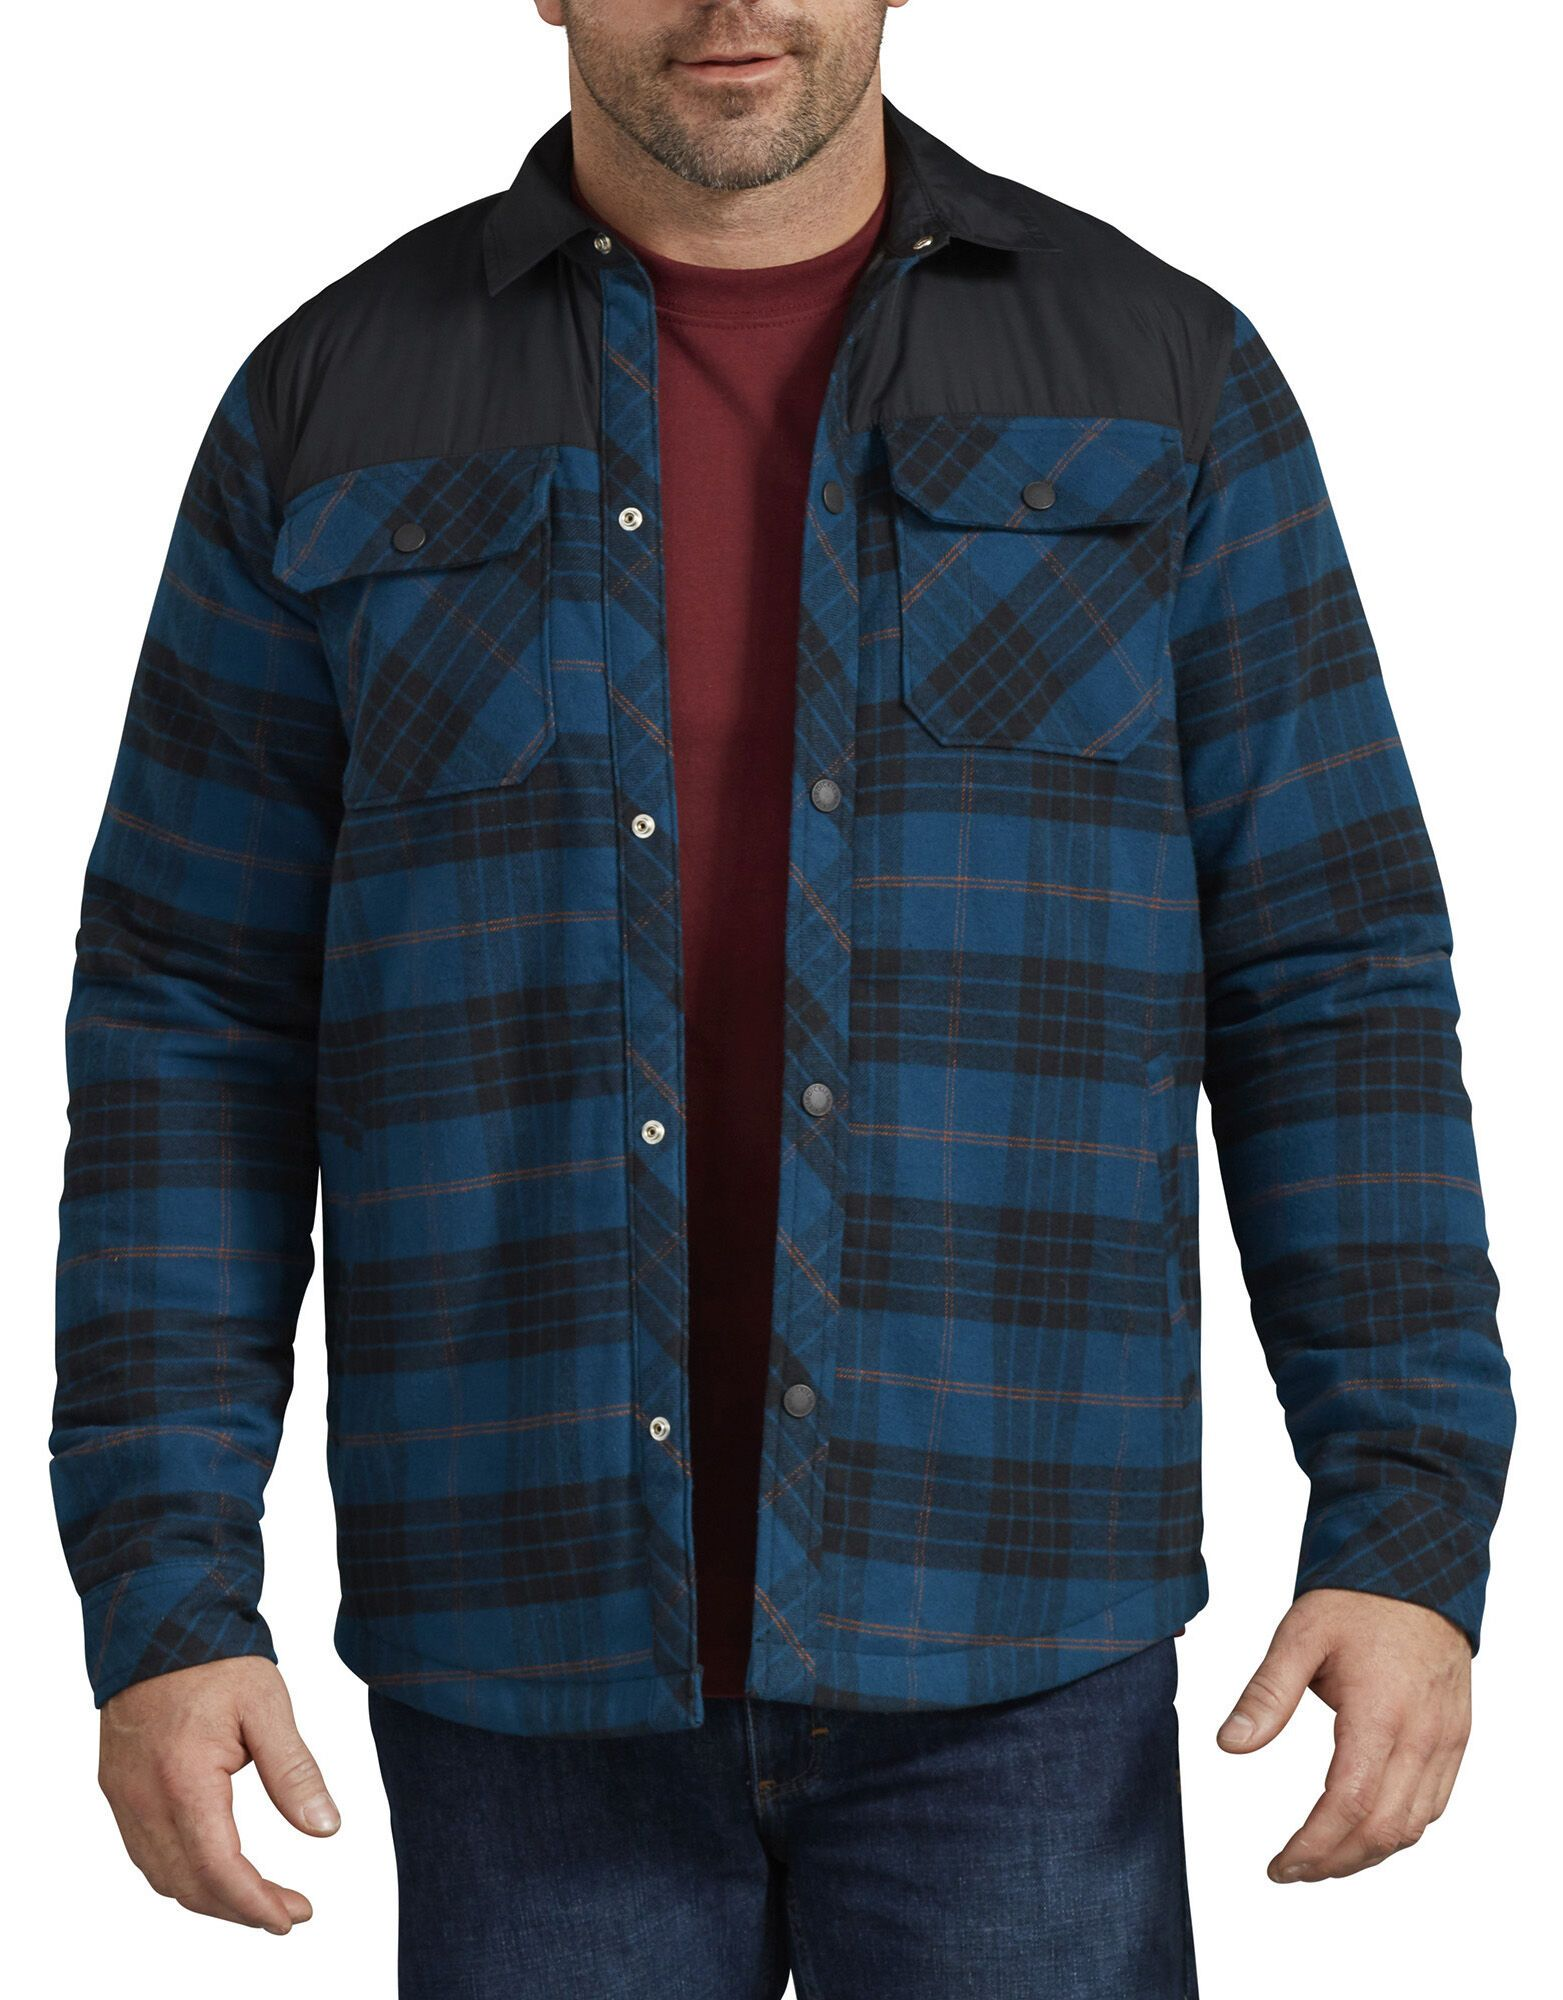 variety styles of 2019 united states exquisite style DICKIES MEN'S Flannel Shirt Jacket TJ249